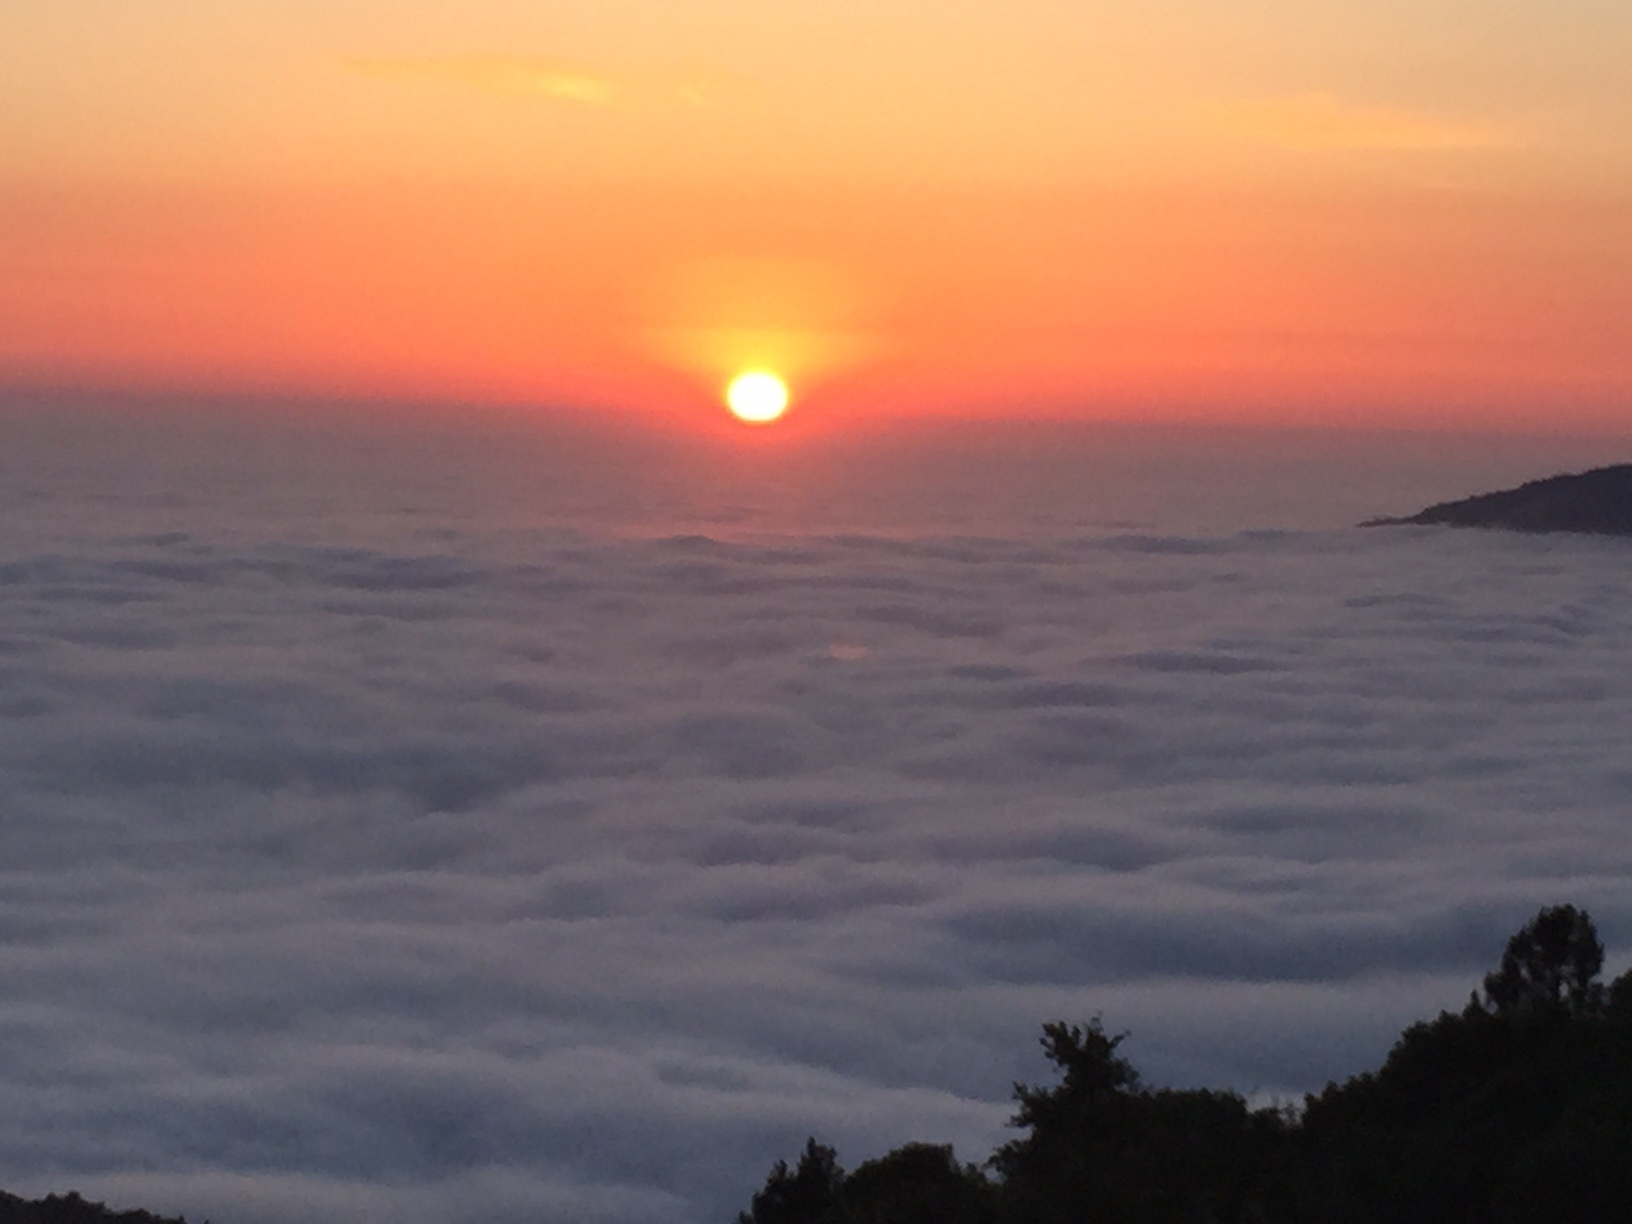 Camping Sunset Over Clouds Image